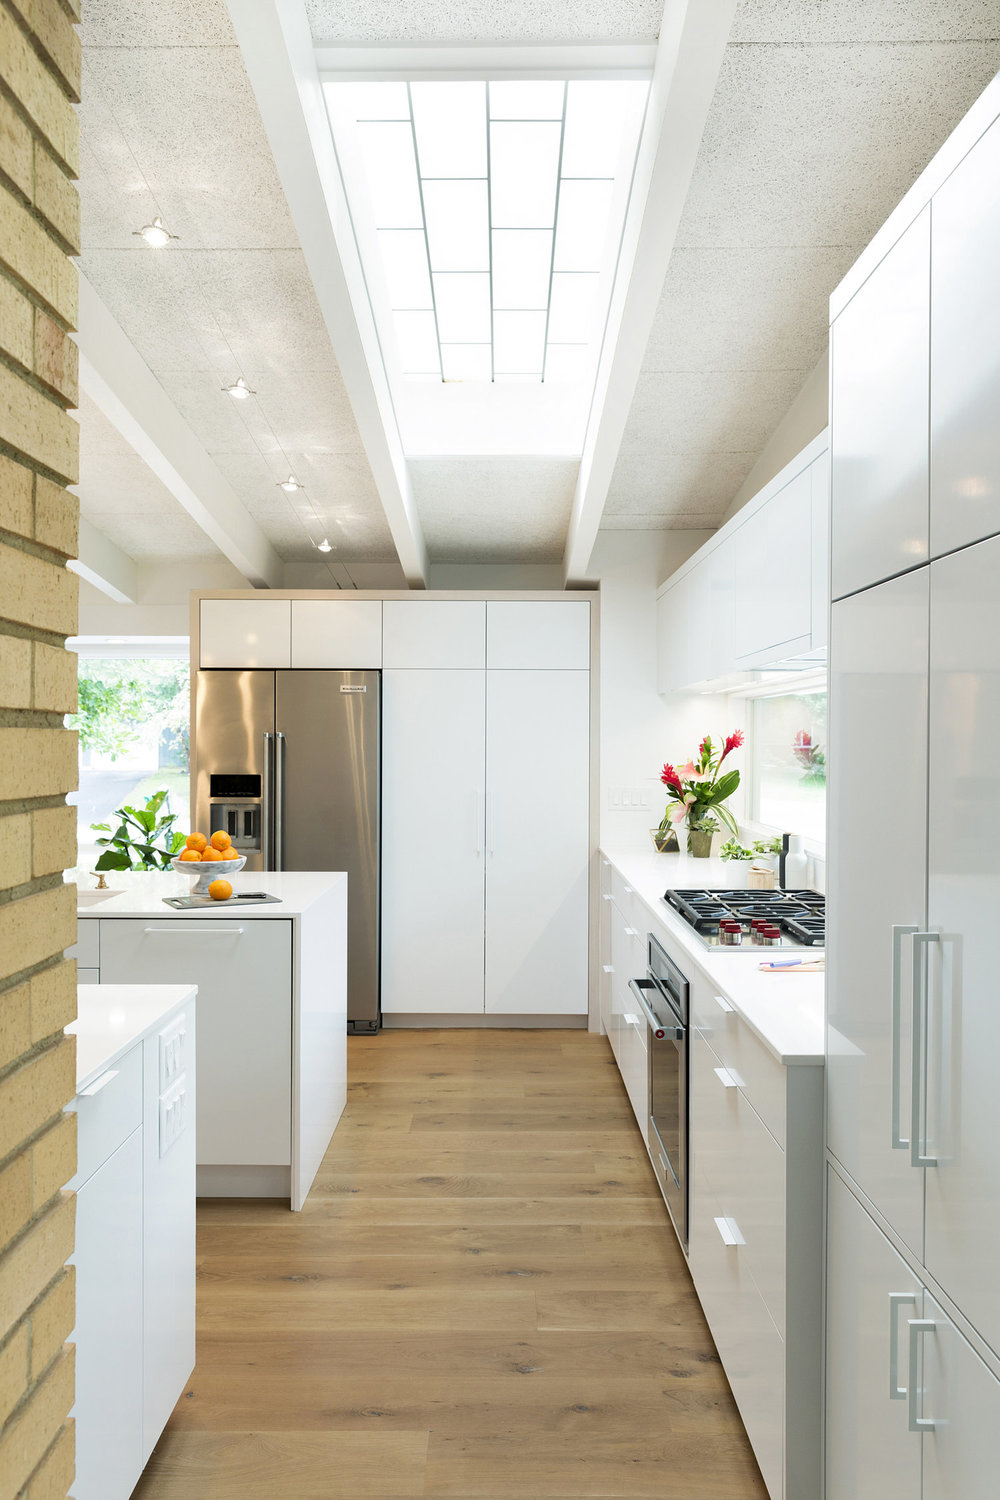 A skylight in our Midcentury Revitalization kitchen provides natural light throughout the day, creating interest via shifting shadow patterns on the floor as the sun changes its position. / Source:    Vela Creative